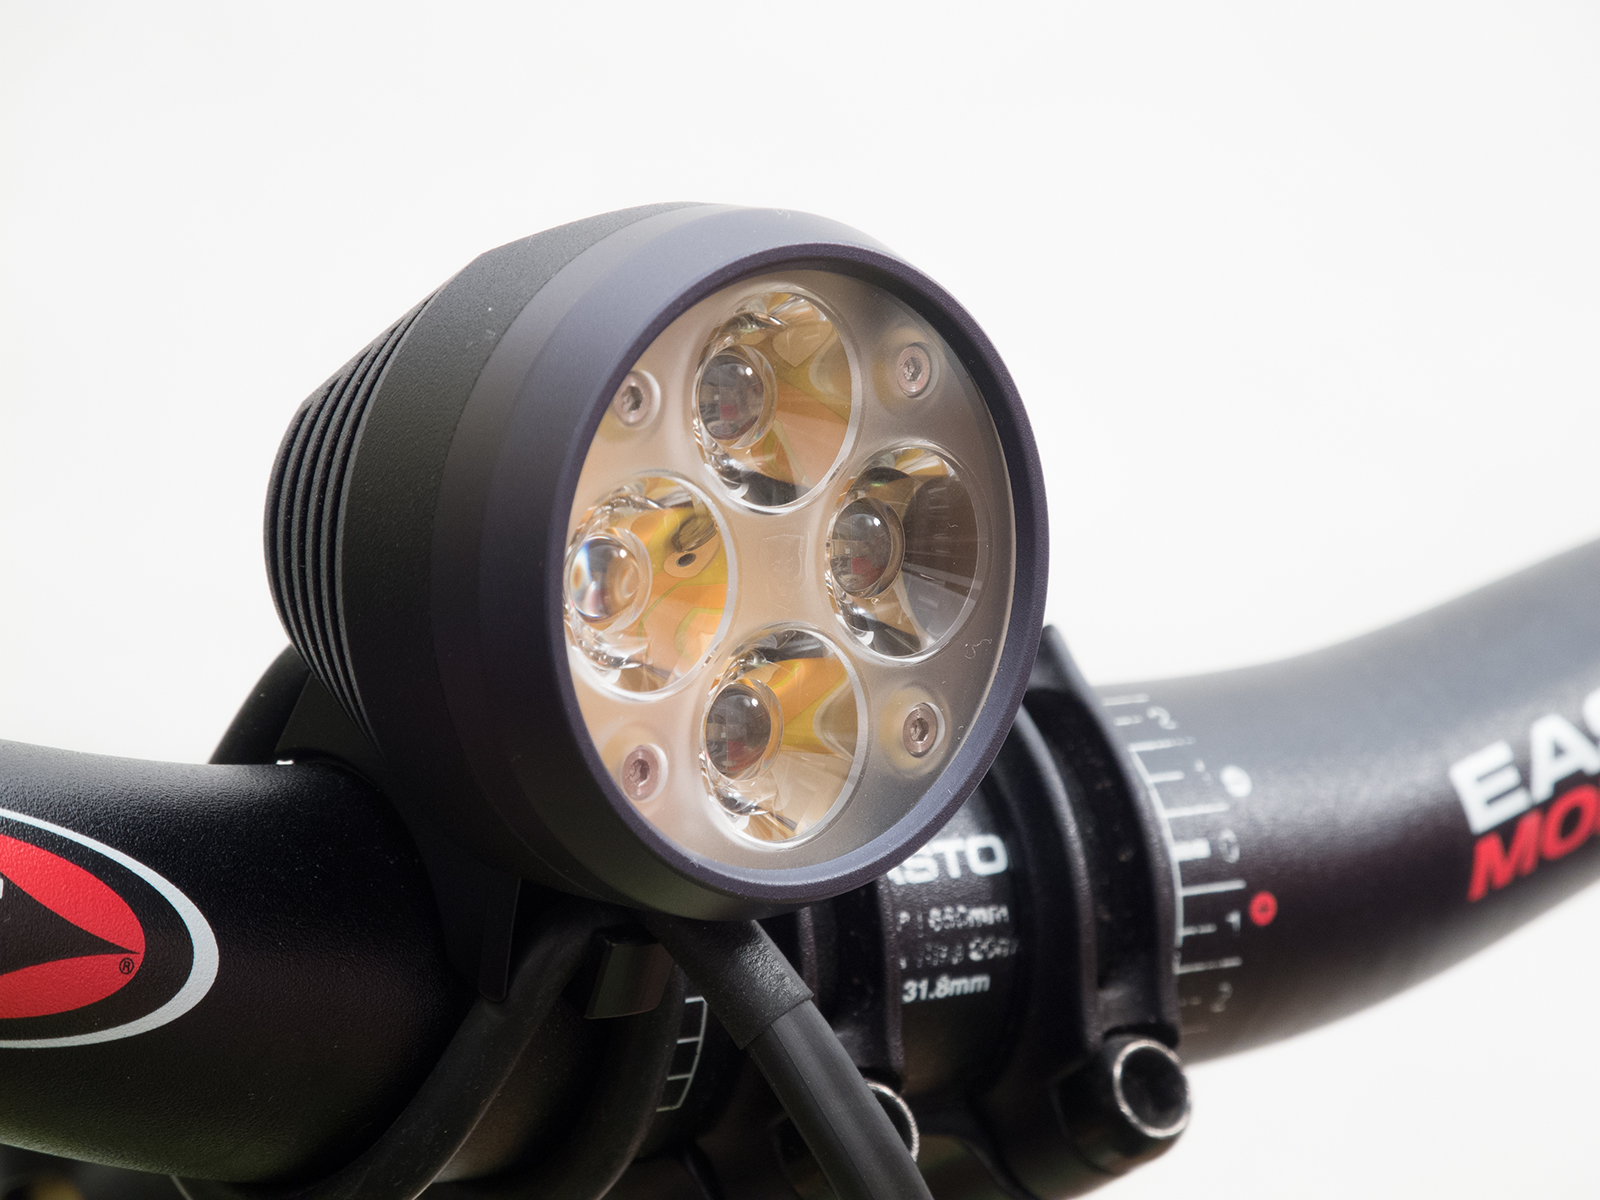 3. LUPINE WILMA 7 | LED-Lampen im Test